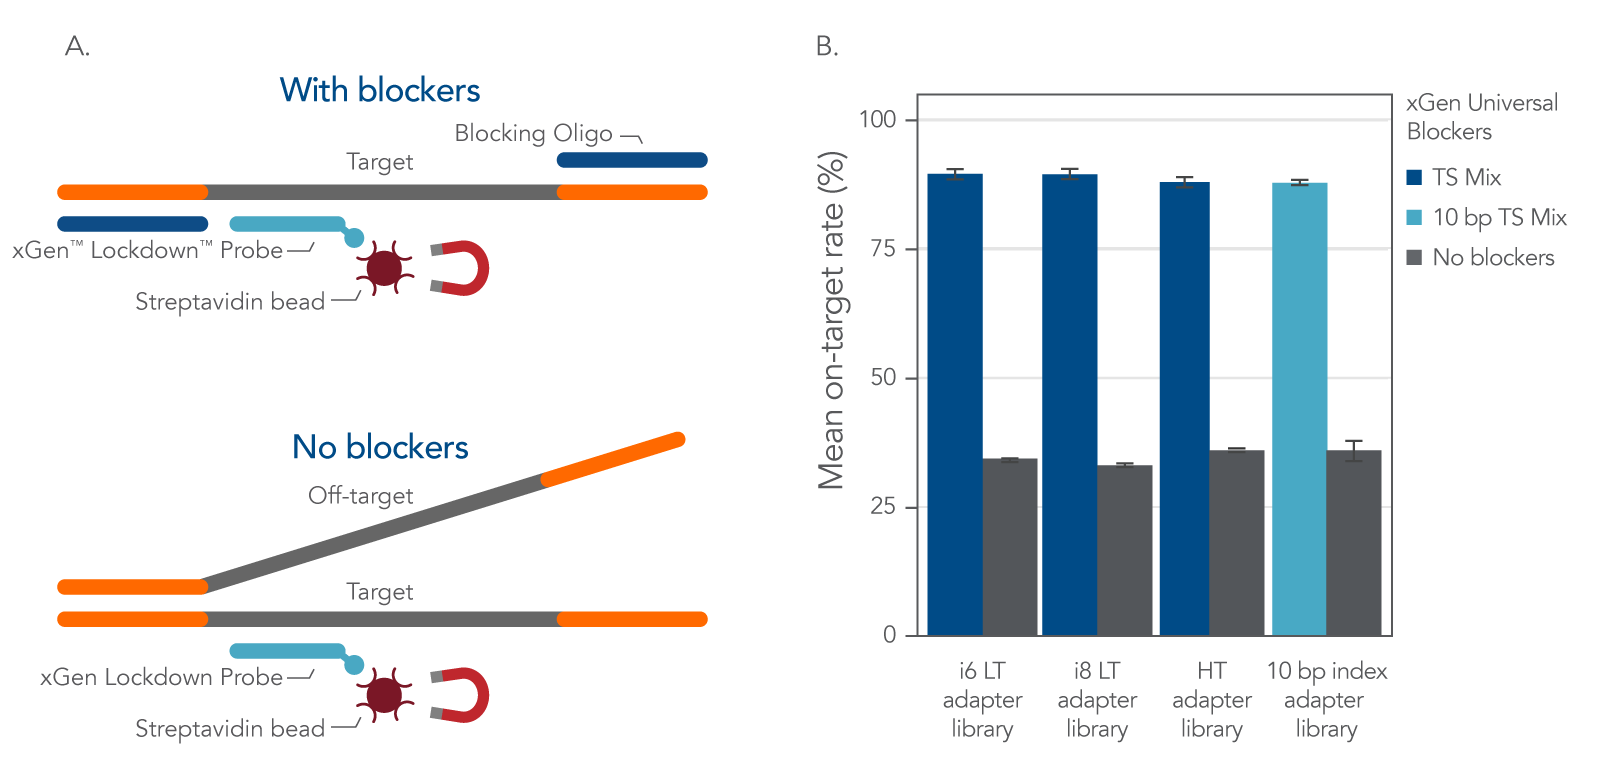 Improved on-target performance using blockers